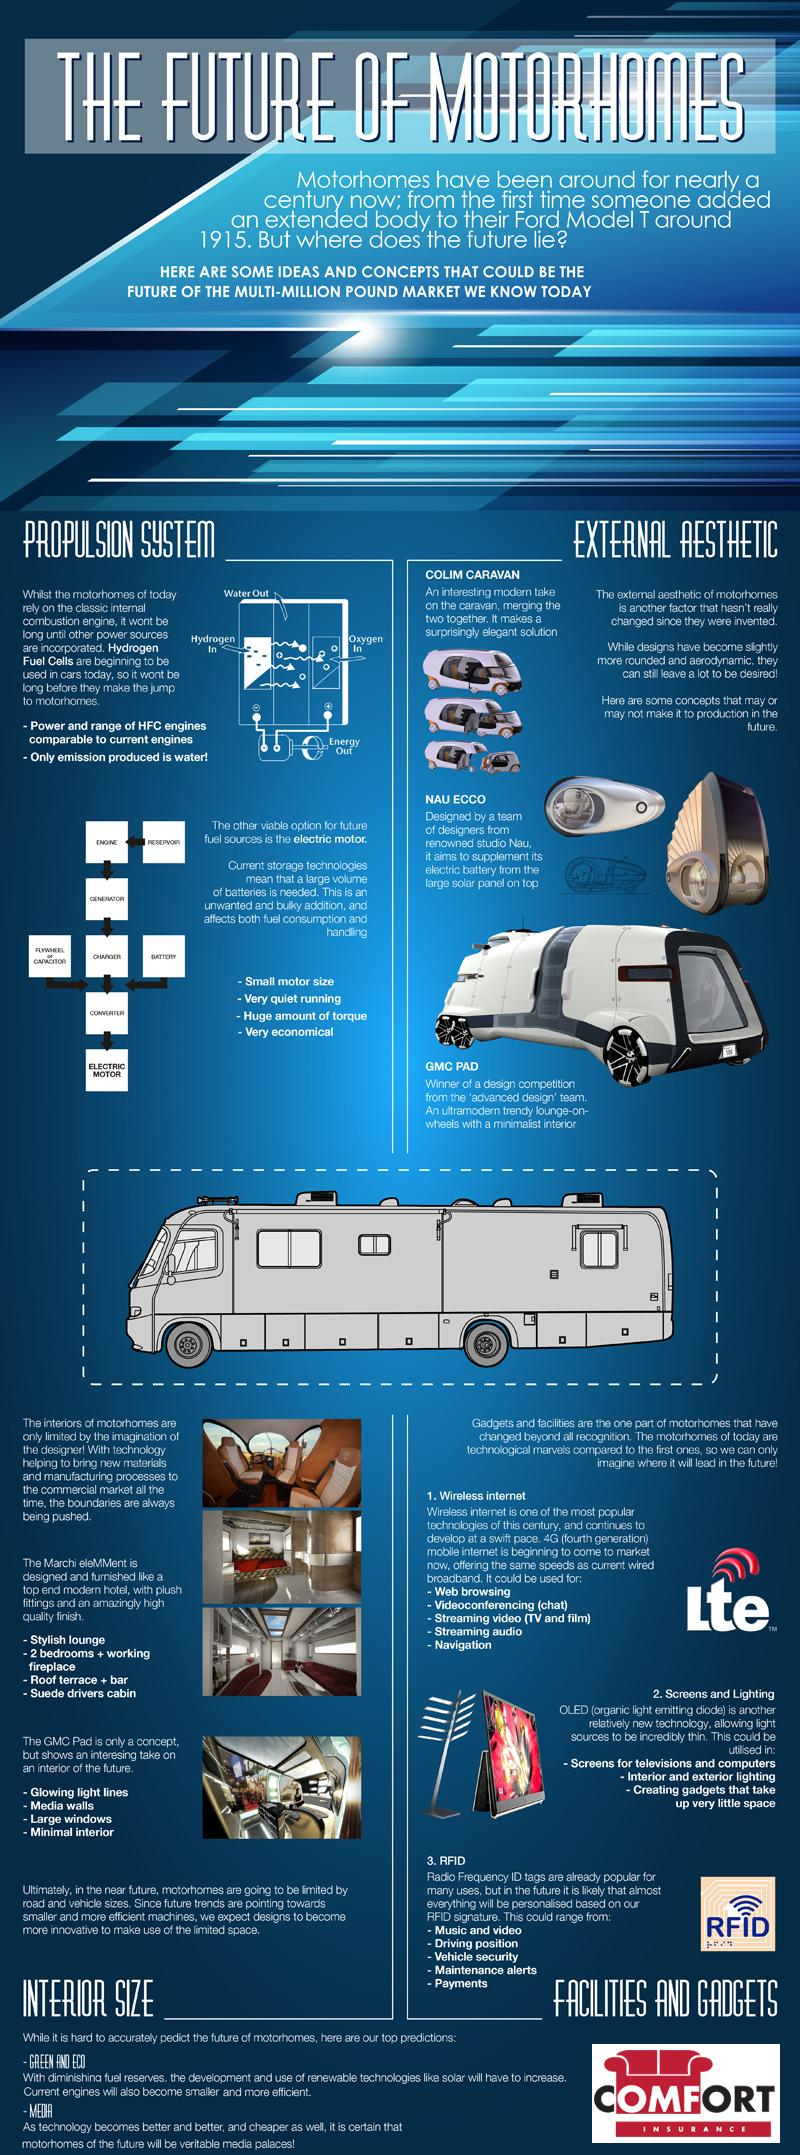 The Future of Motorhomes